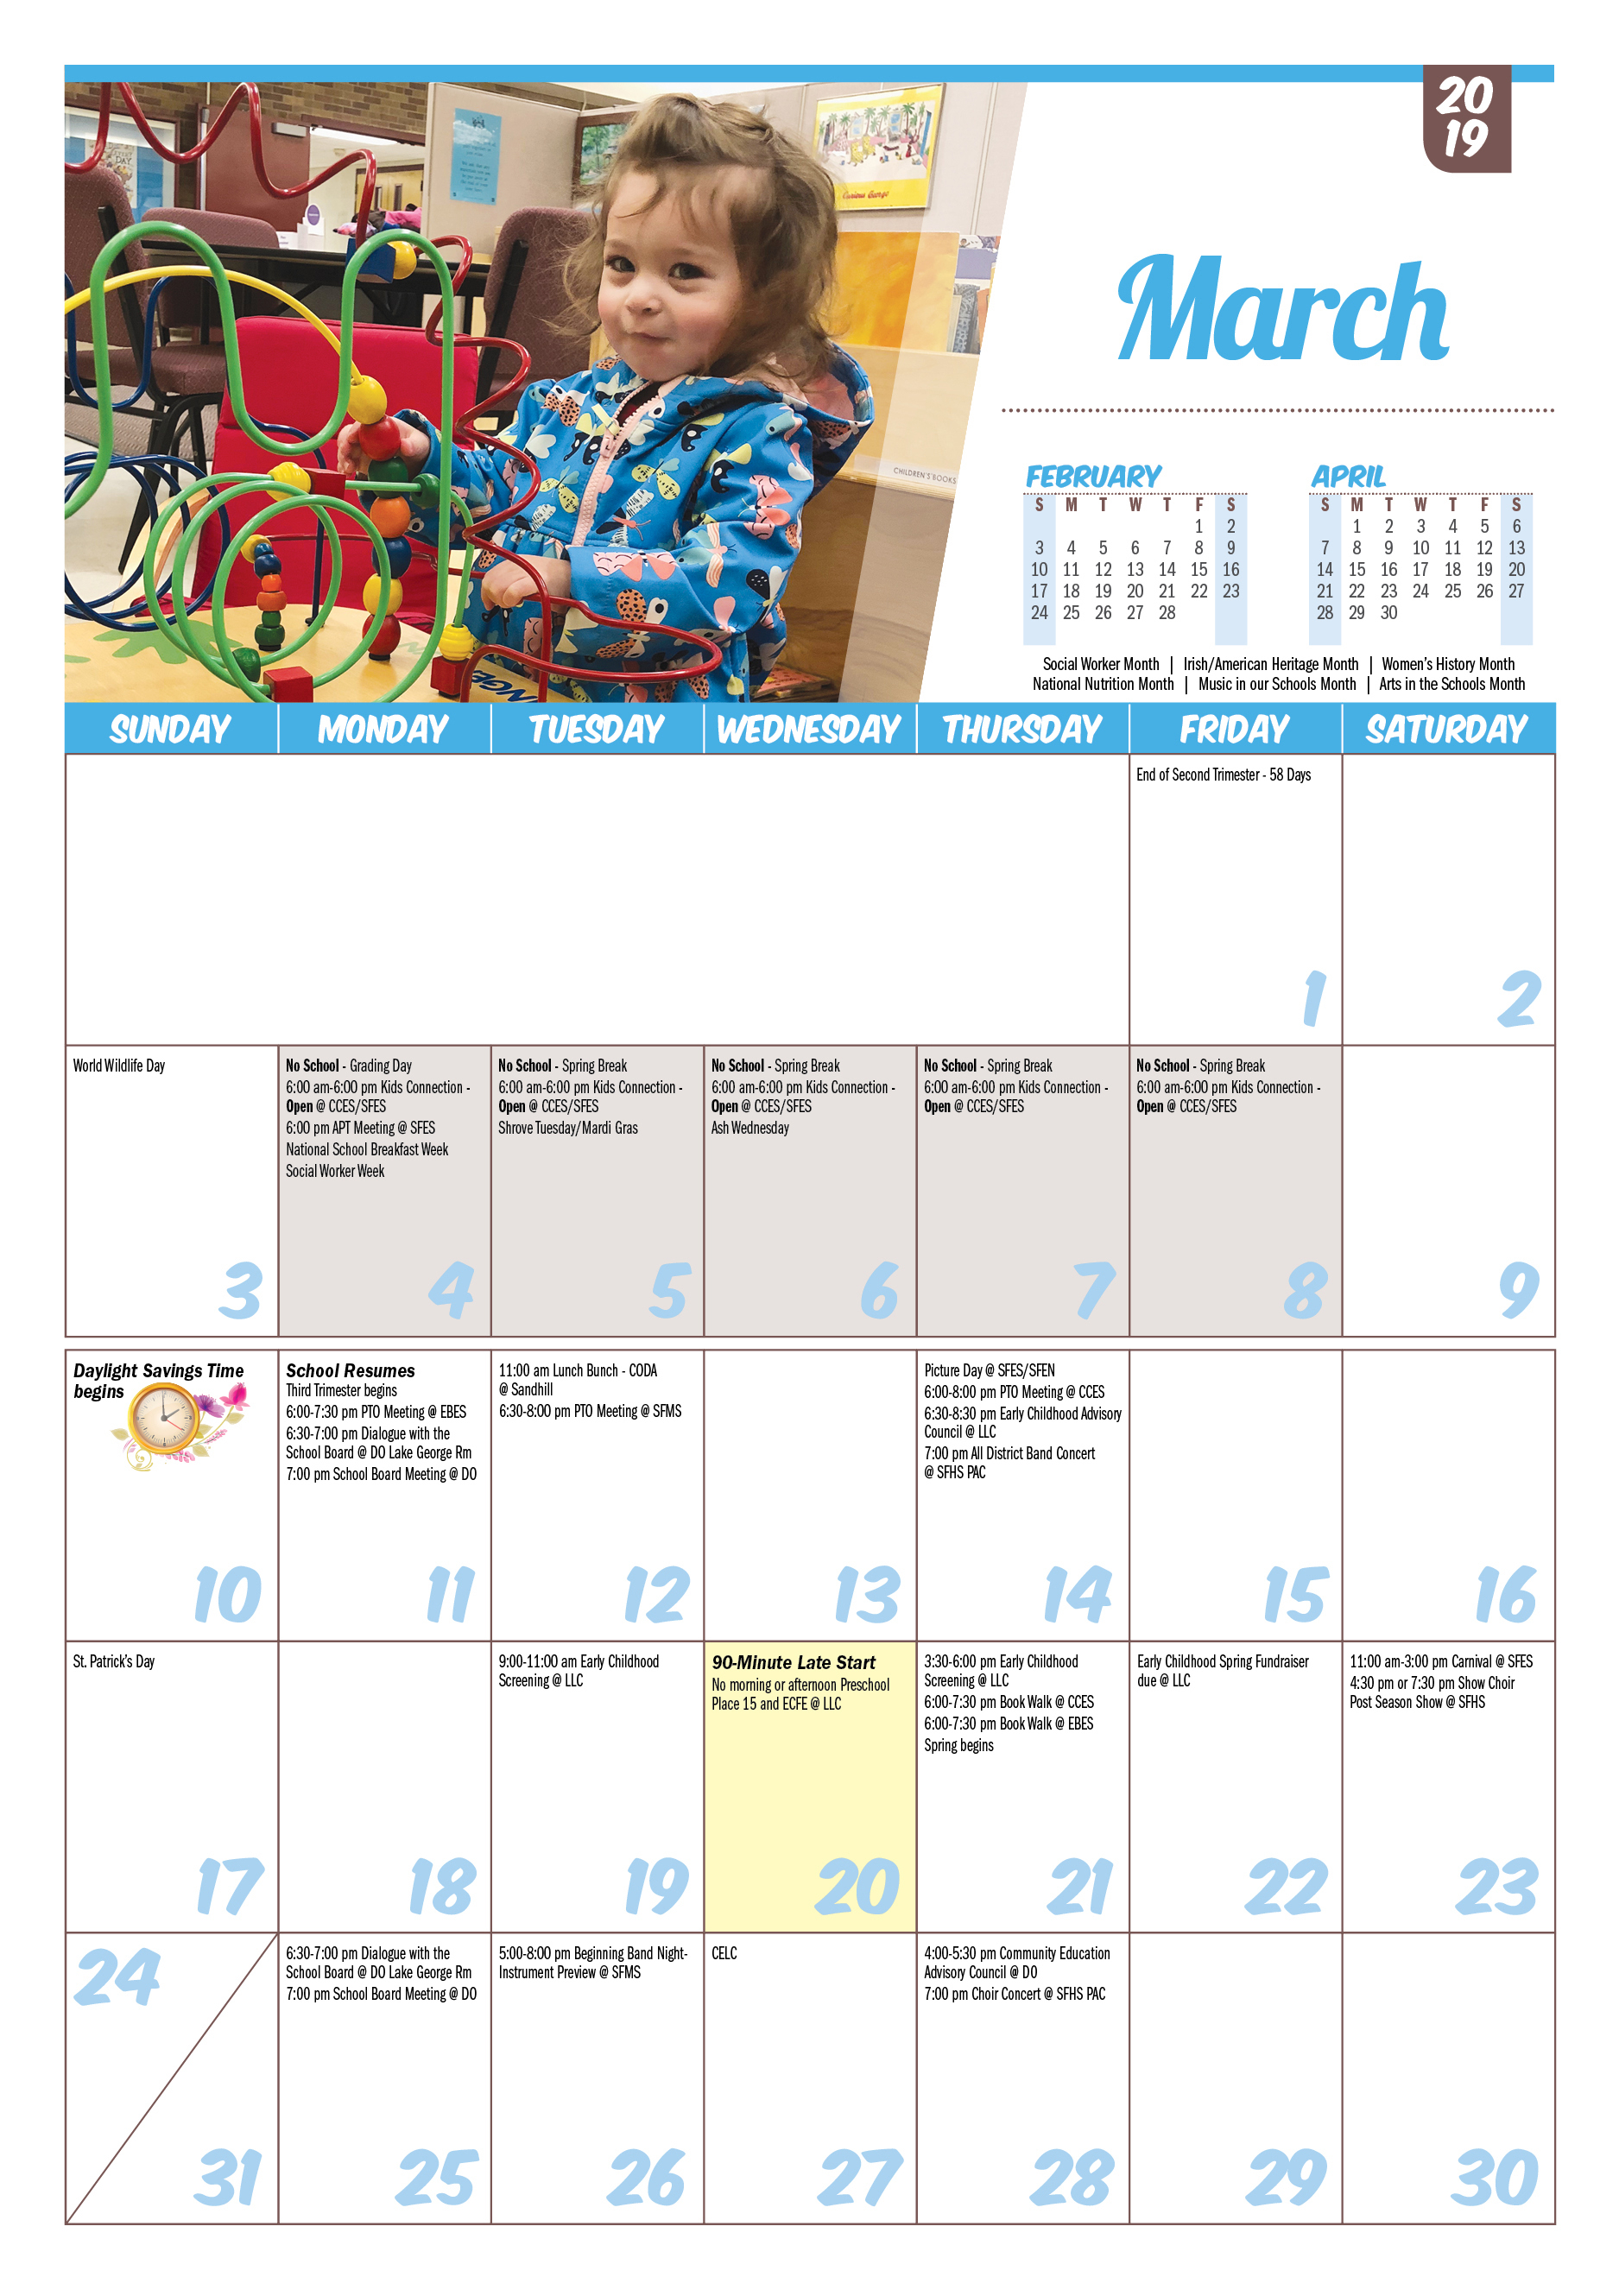 Isd 15, St. Francis: Printable Calendars